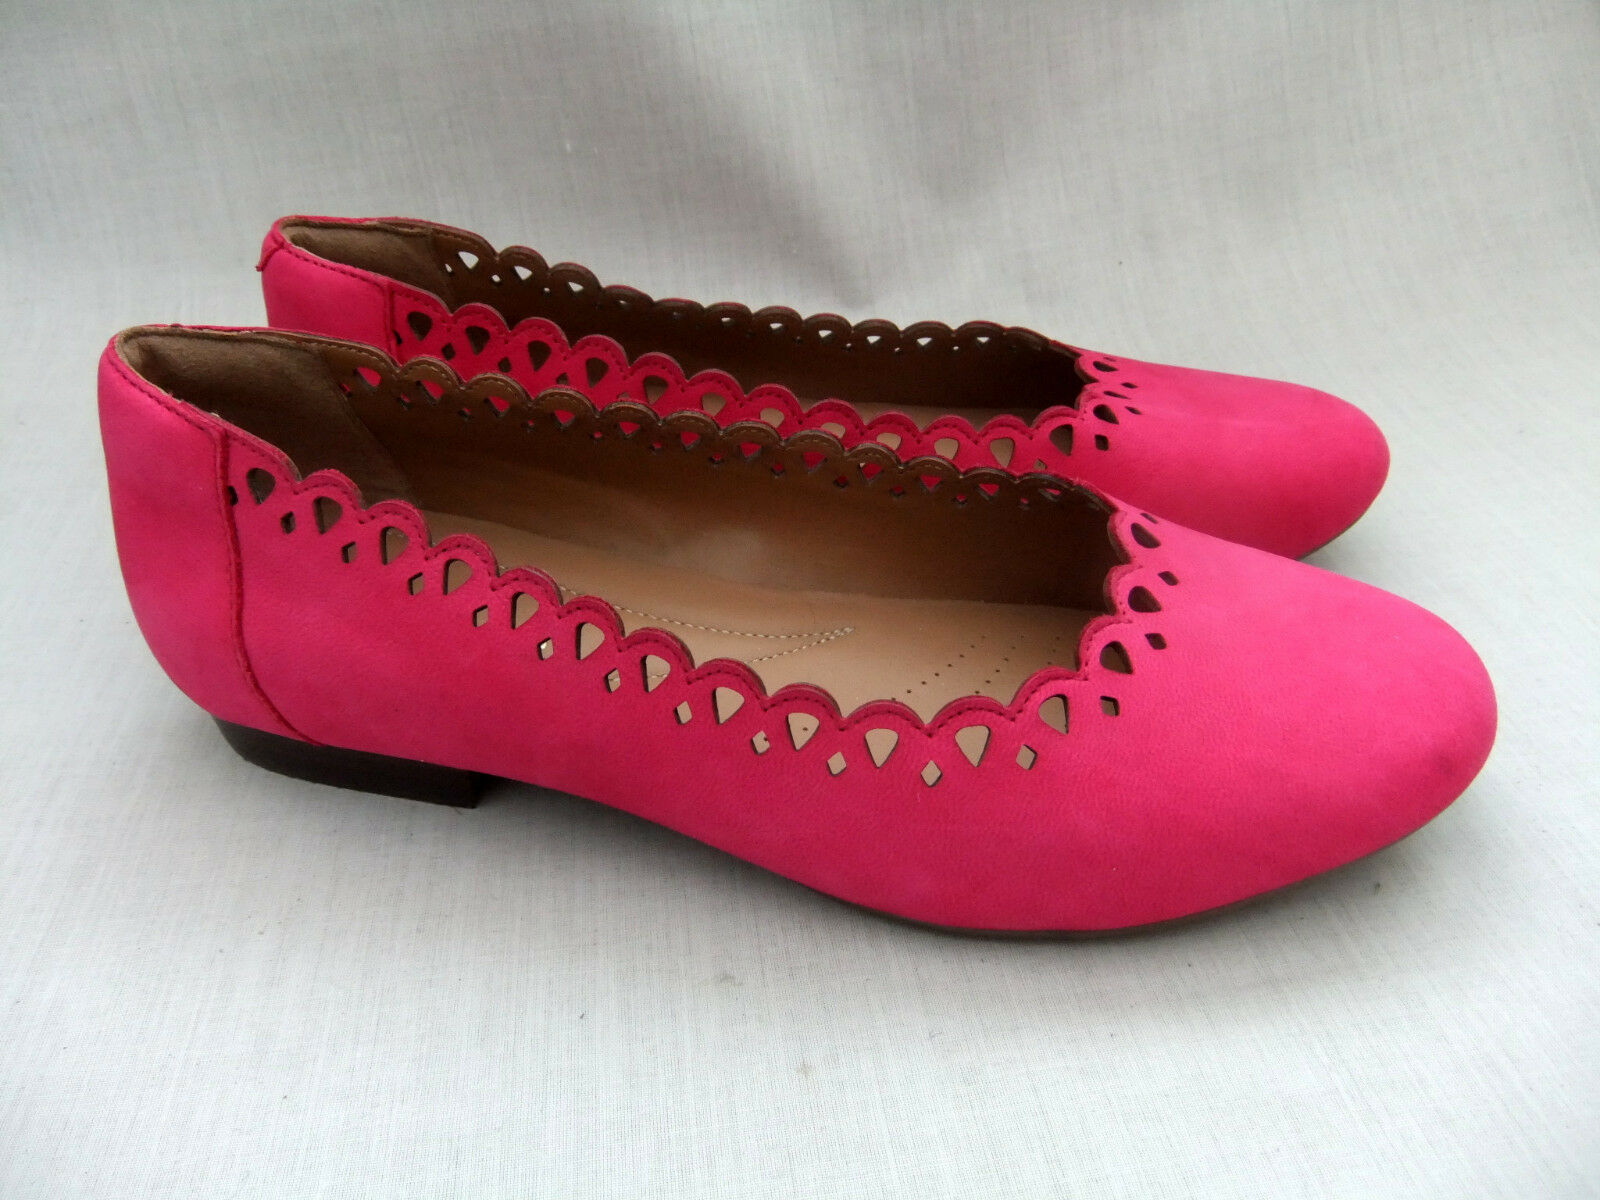 NEW CLARKS HENDERSON RICH femmes FUCHSIA NUBUCK LEATHER chaussures Taille 6   39.5